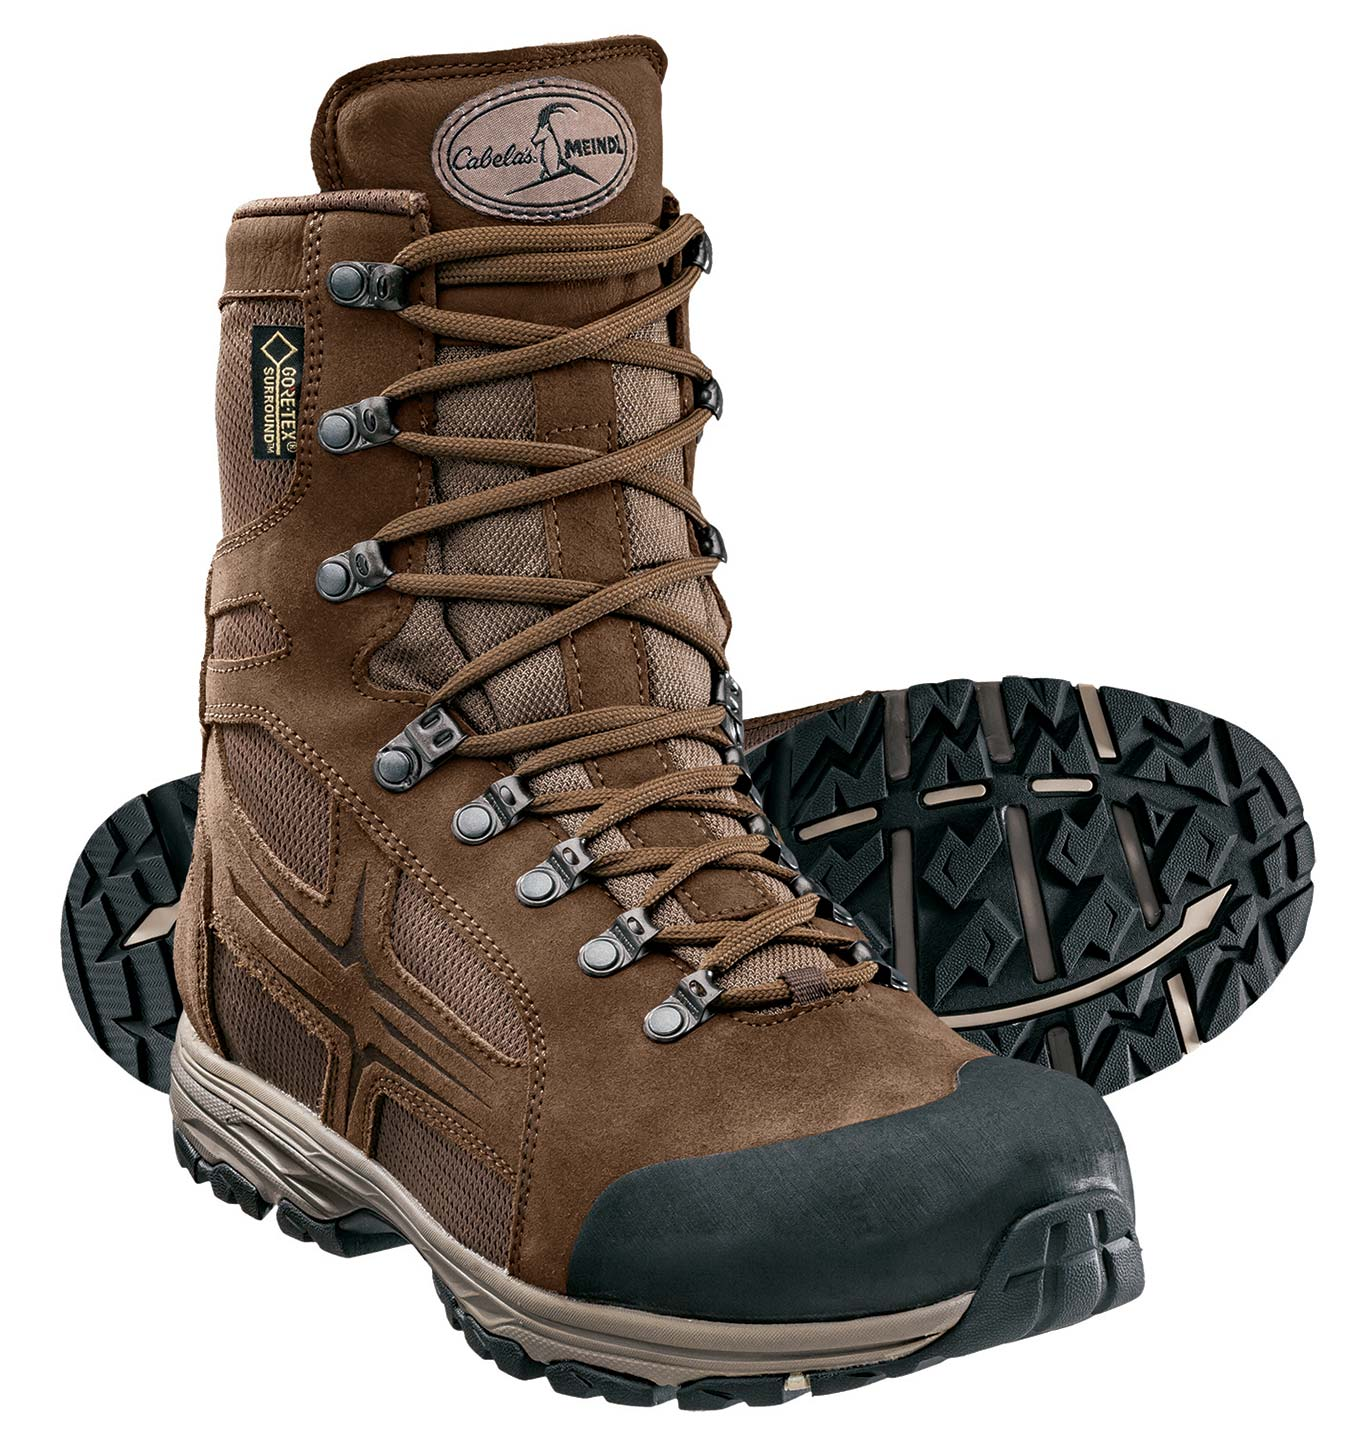 Cabela's Meindl GORE-TEX Surround Hunting Boots FDGG